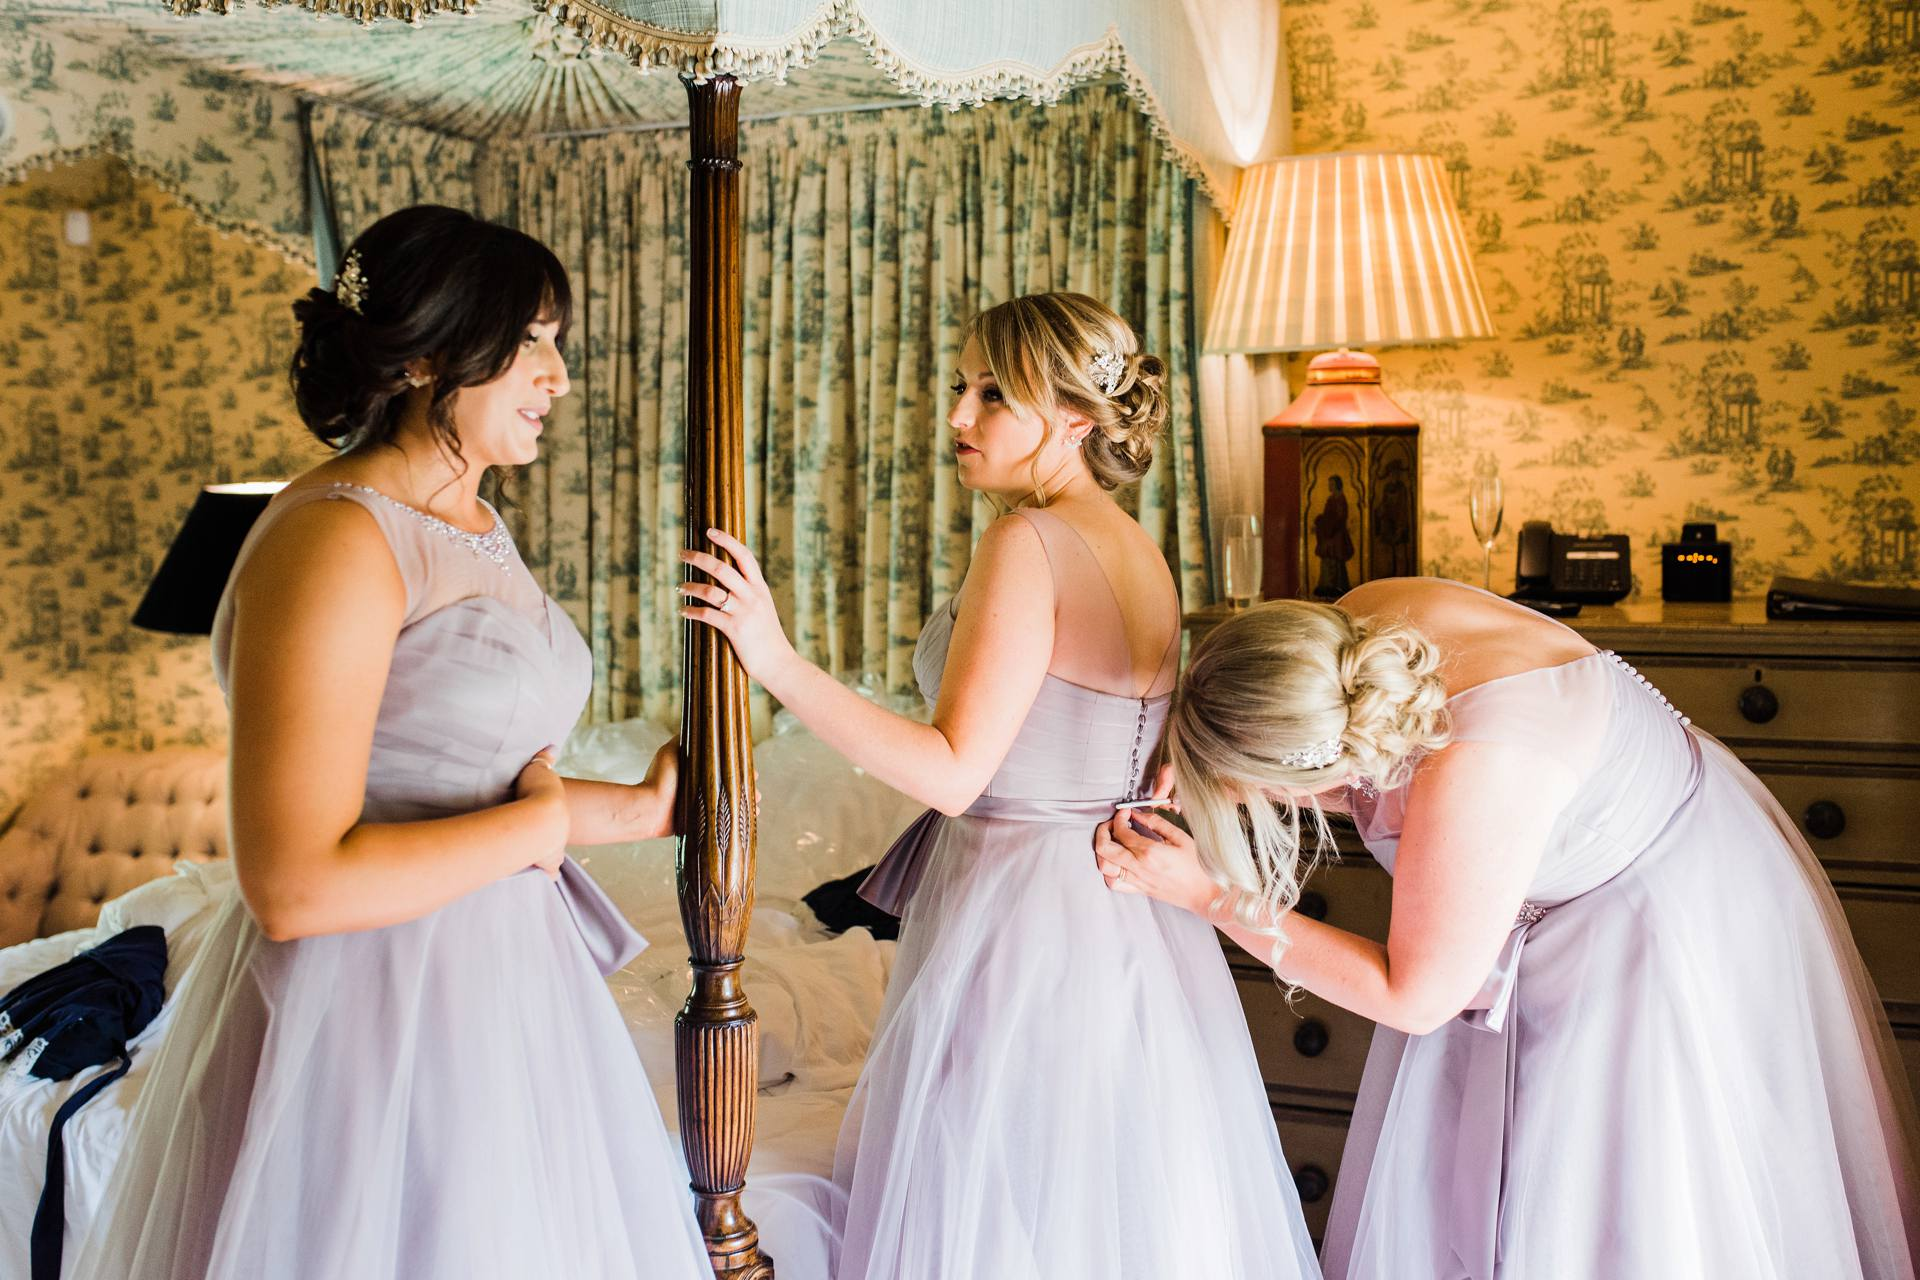 Bridesmaids putting on lavender dresses together